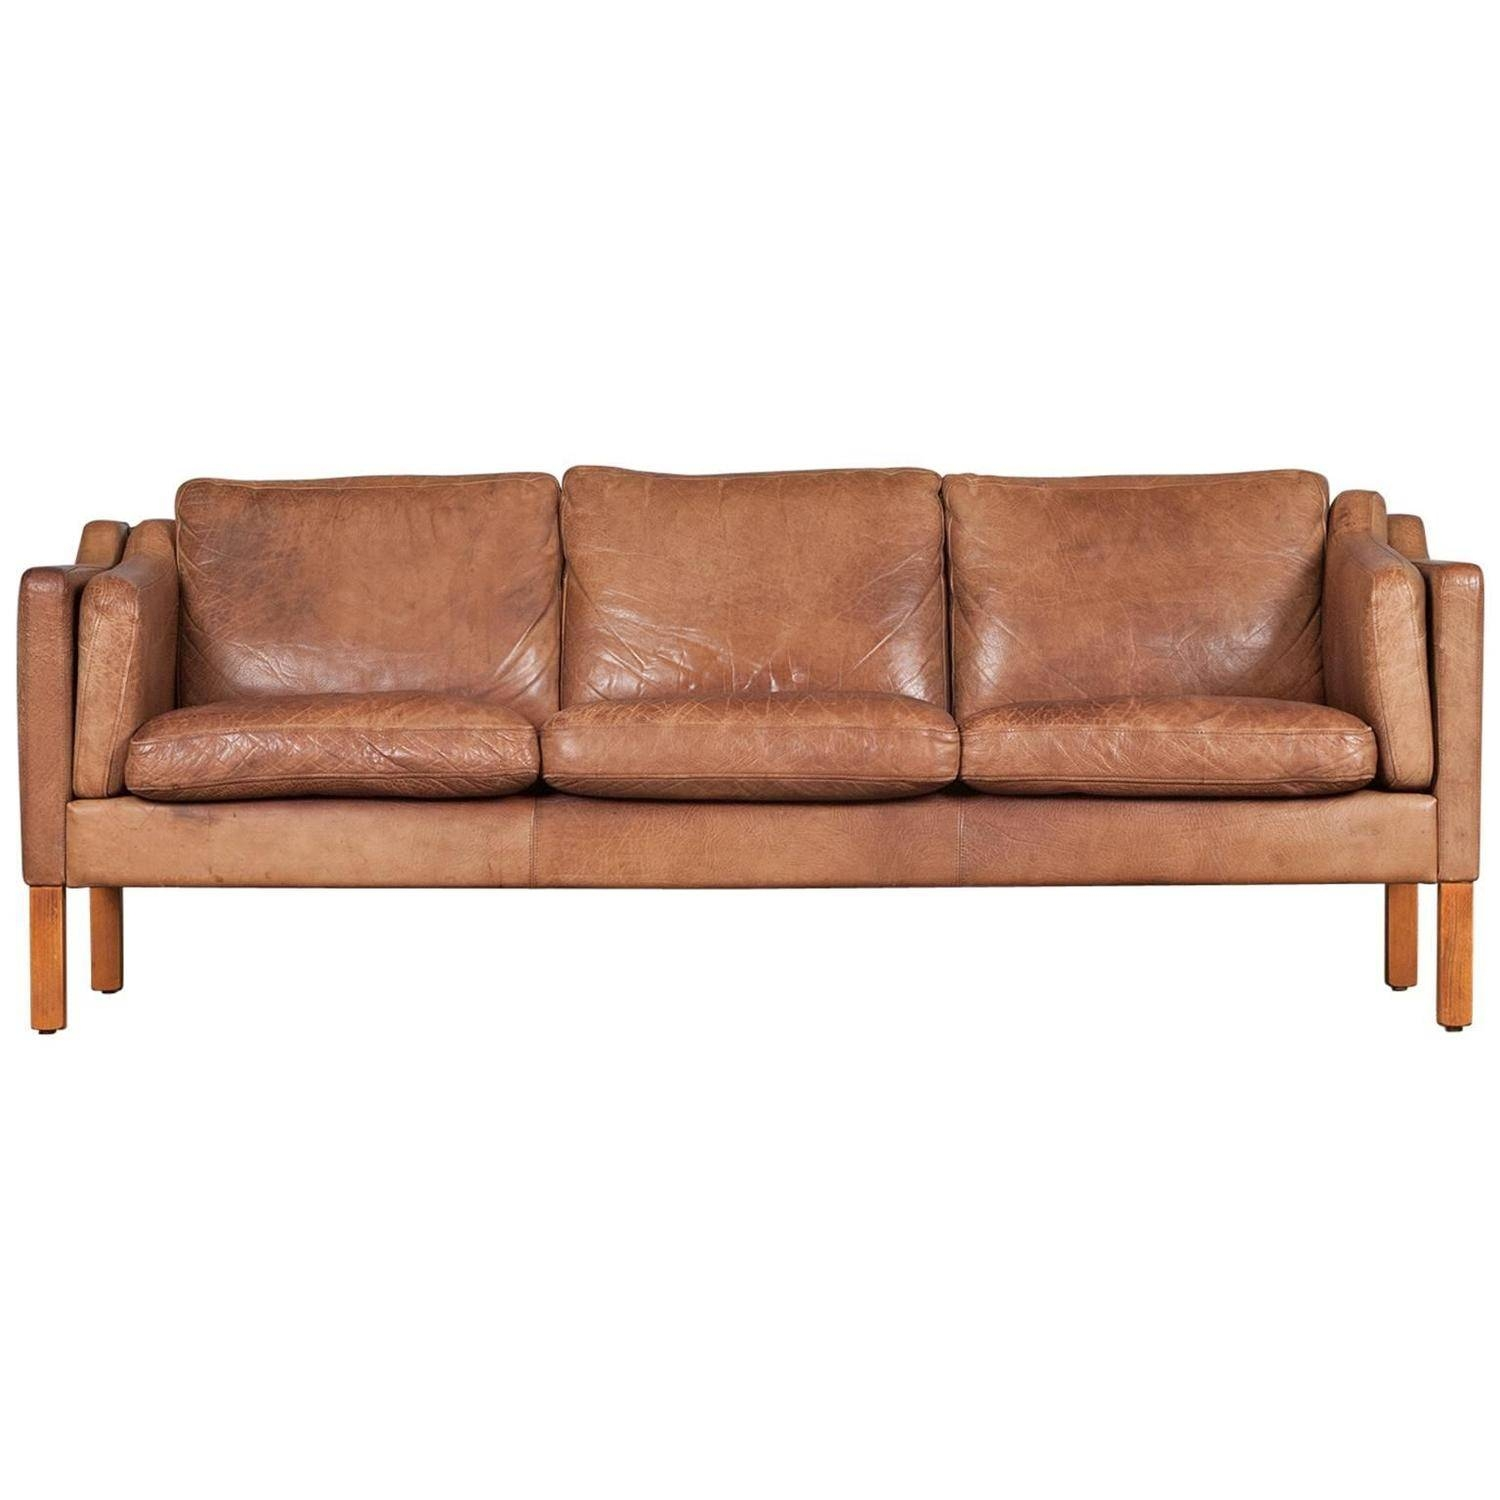 Danish Three Seater Sofa In Camel Coloured Leather, 1960S At 1Stdibs In Camel Color Leather Sofas (Photo 11 of 15)